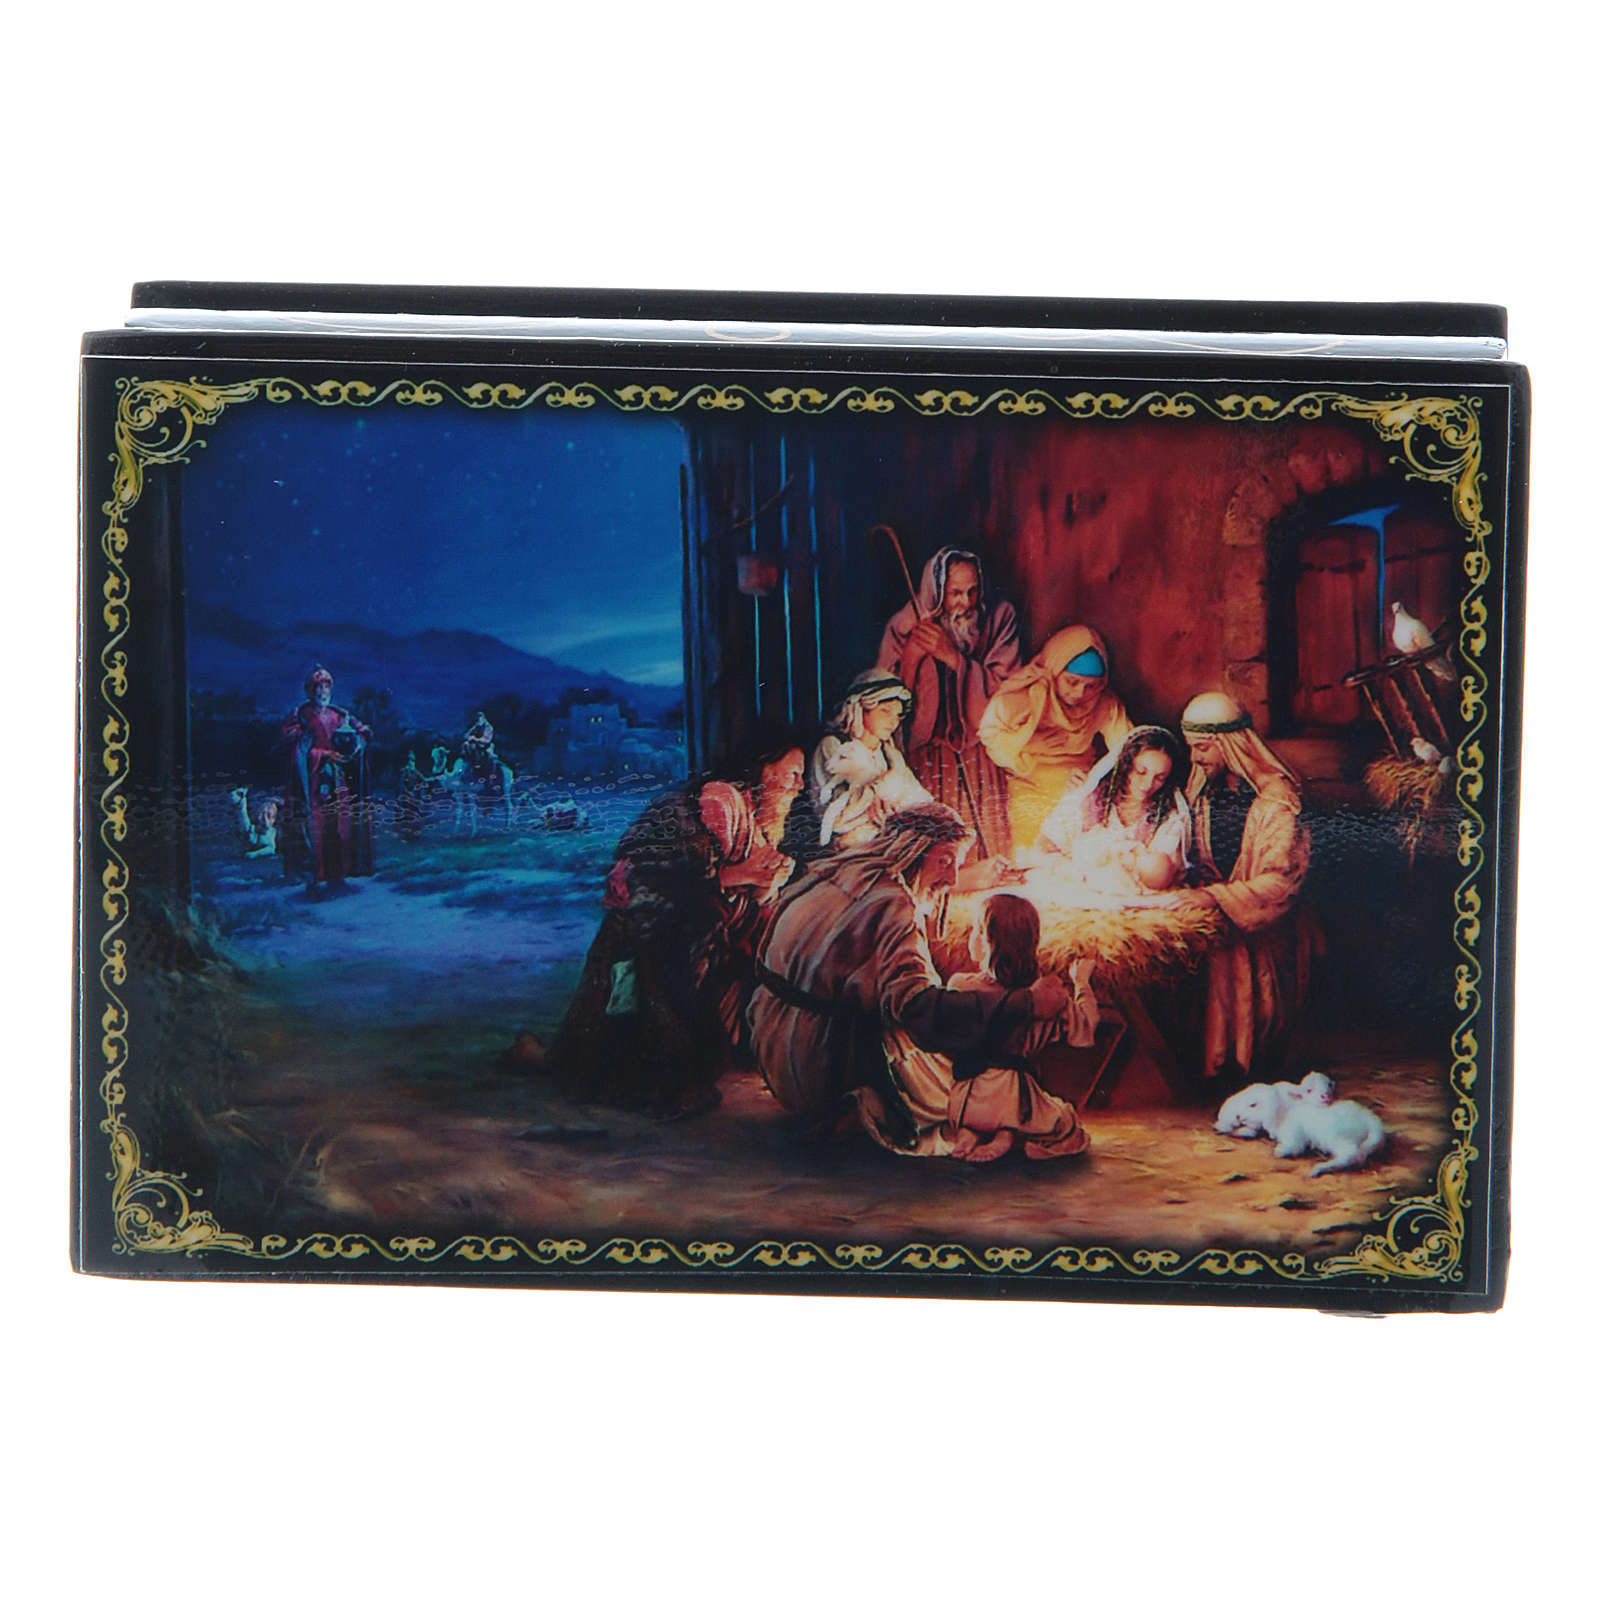 Russian lacquer box, The Nativity and the Adoration of the Magi 9x6 cm 4